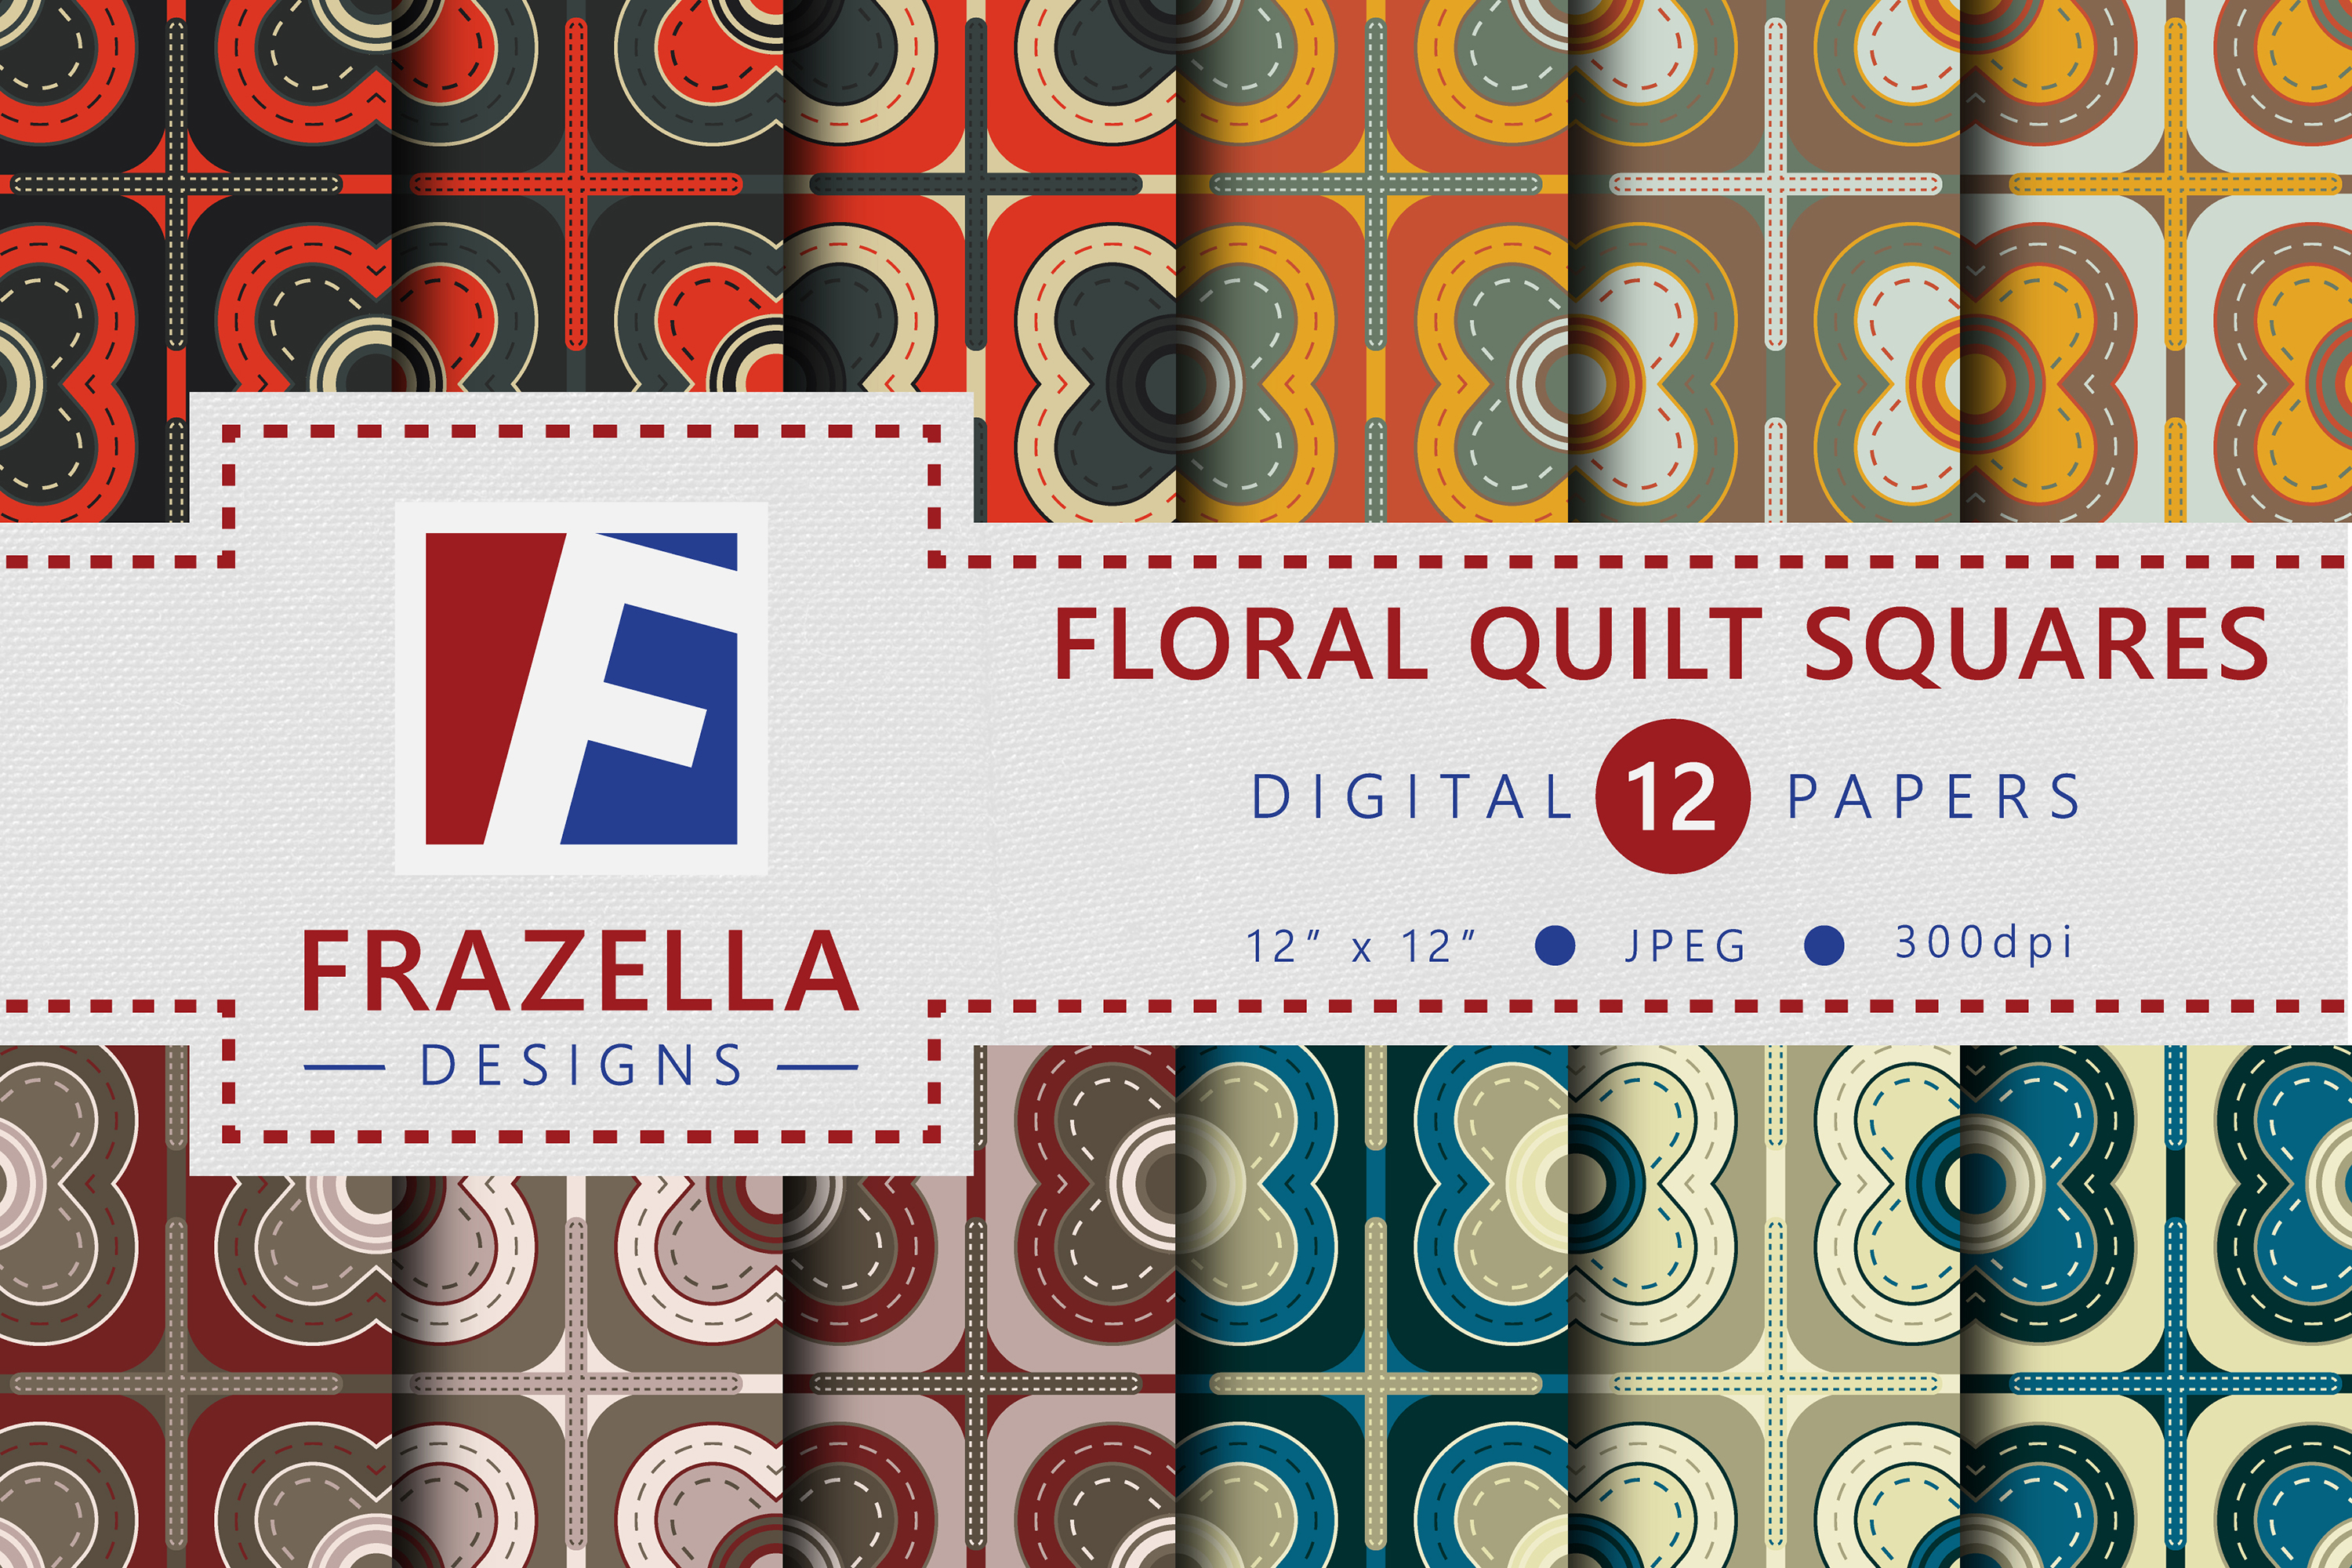 The ULTIMATE Digital Paper Collection Retro Edition Vol. 3. example image 6